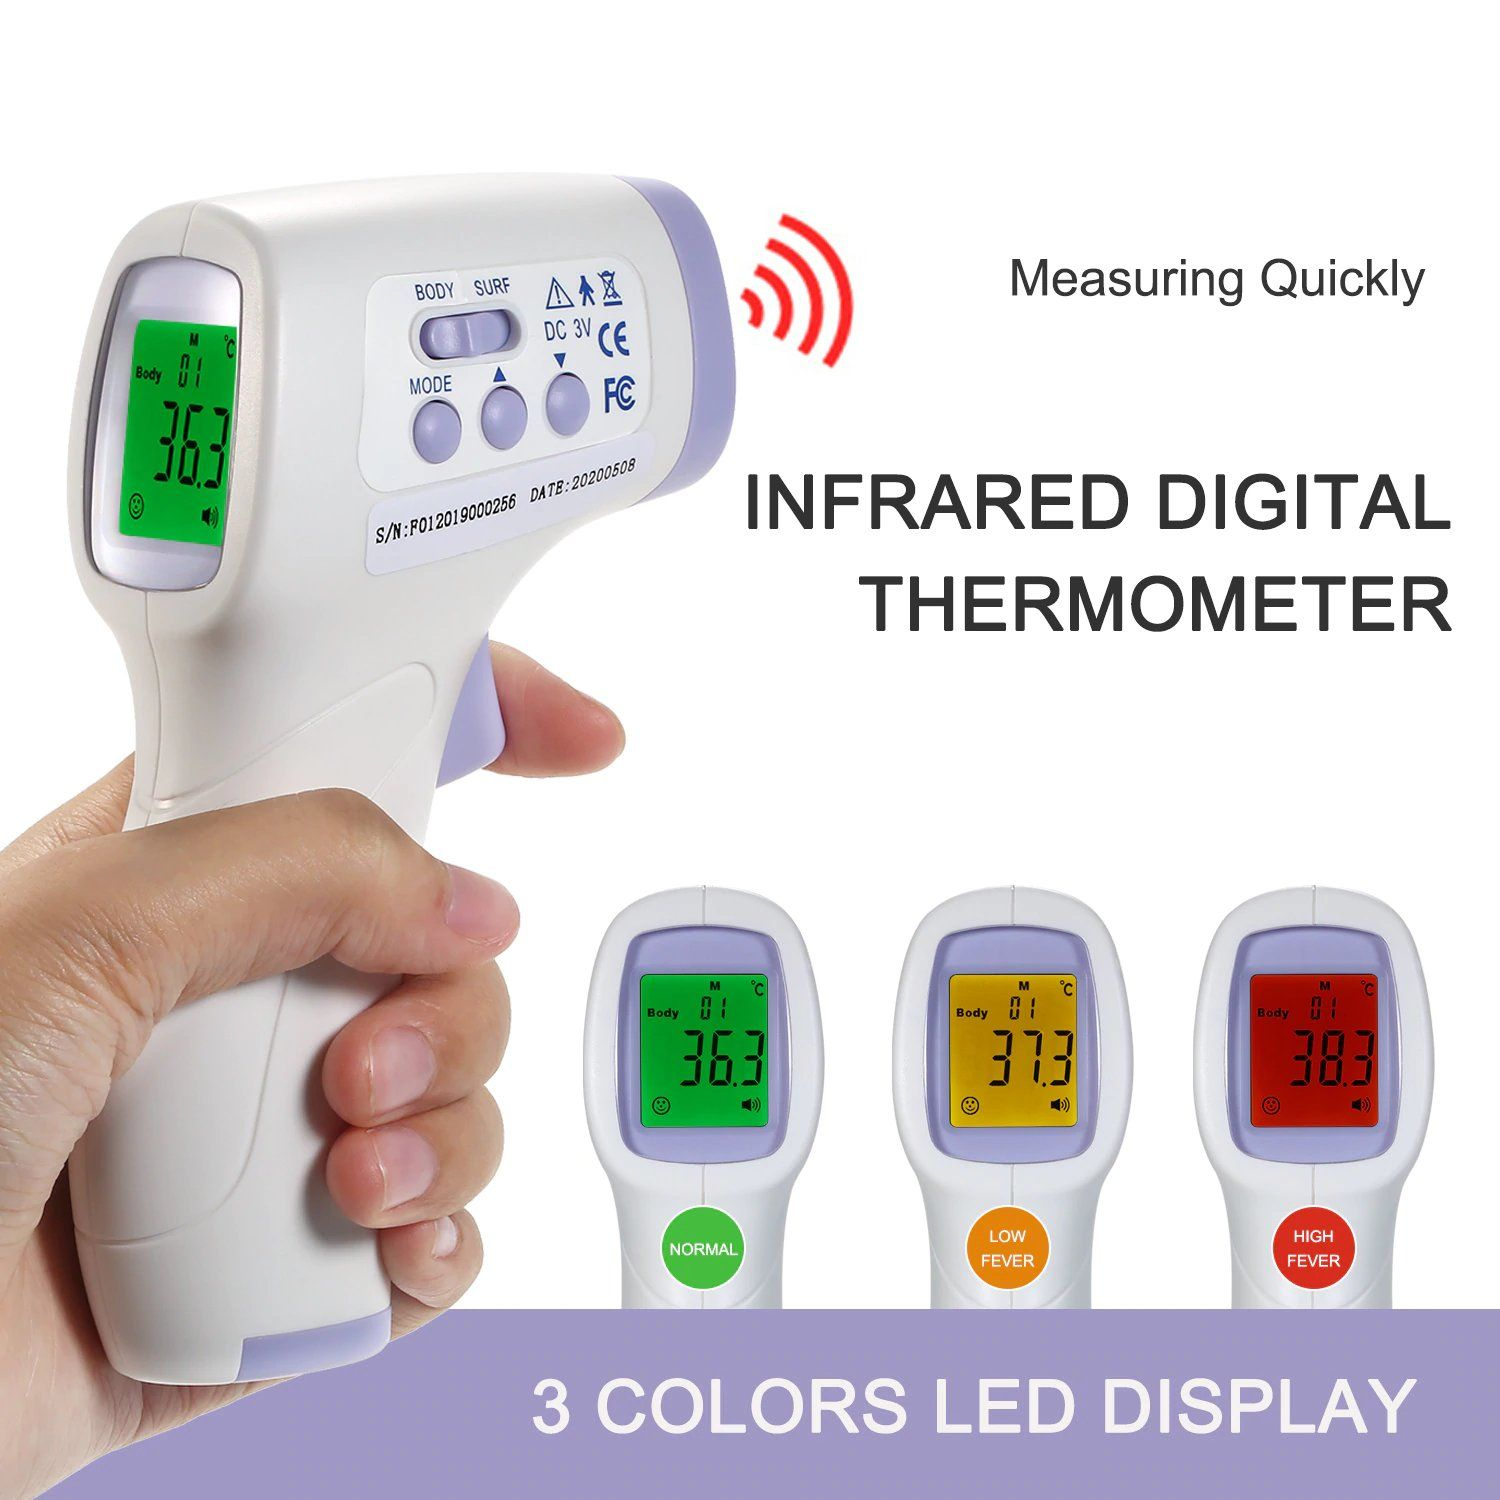 Forehead Termometro Digital Infrared Termometro Digital Termometro Non Contact High Sensitivity Thermometric Instruments Md1131 In 2020 Infrared Thermometer Digital Thermometer Thermometer Find your infrared thermometer easily amongst the 191 products from the leading brands (boso, welchallyn, omron healthcare,.) on medicalexpo, the medical equipment specialist for your. pinterest